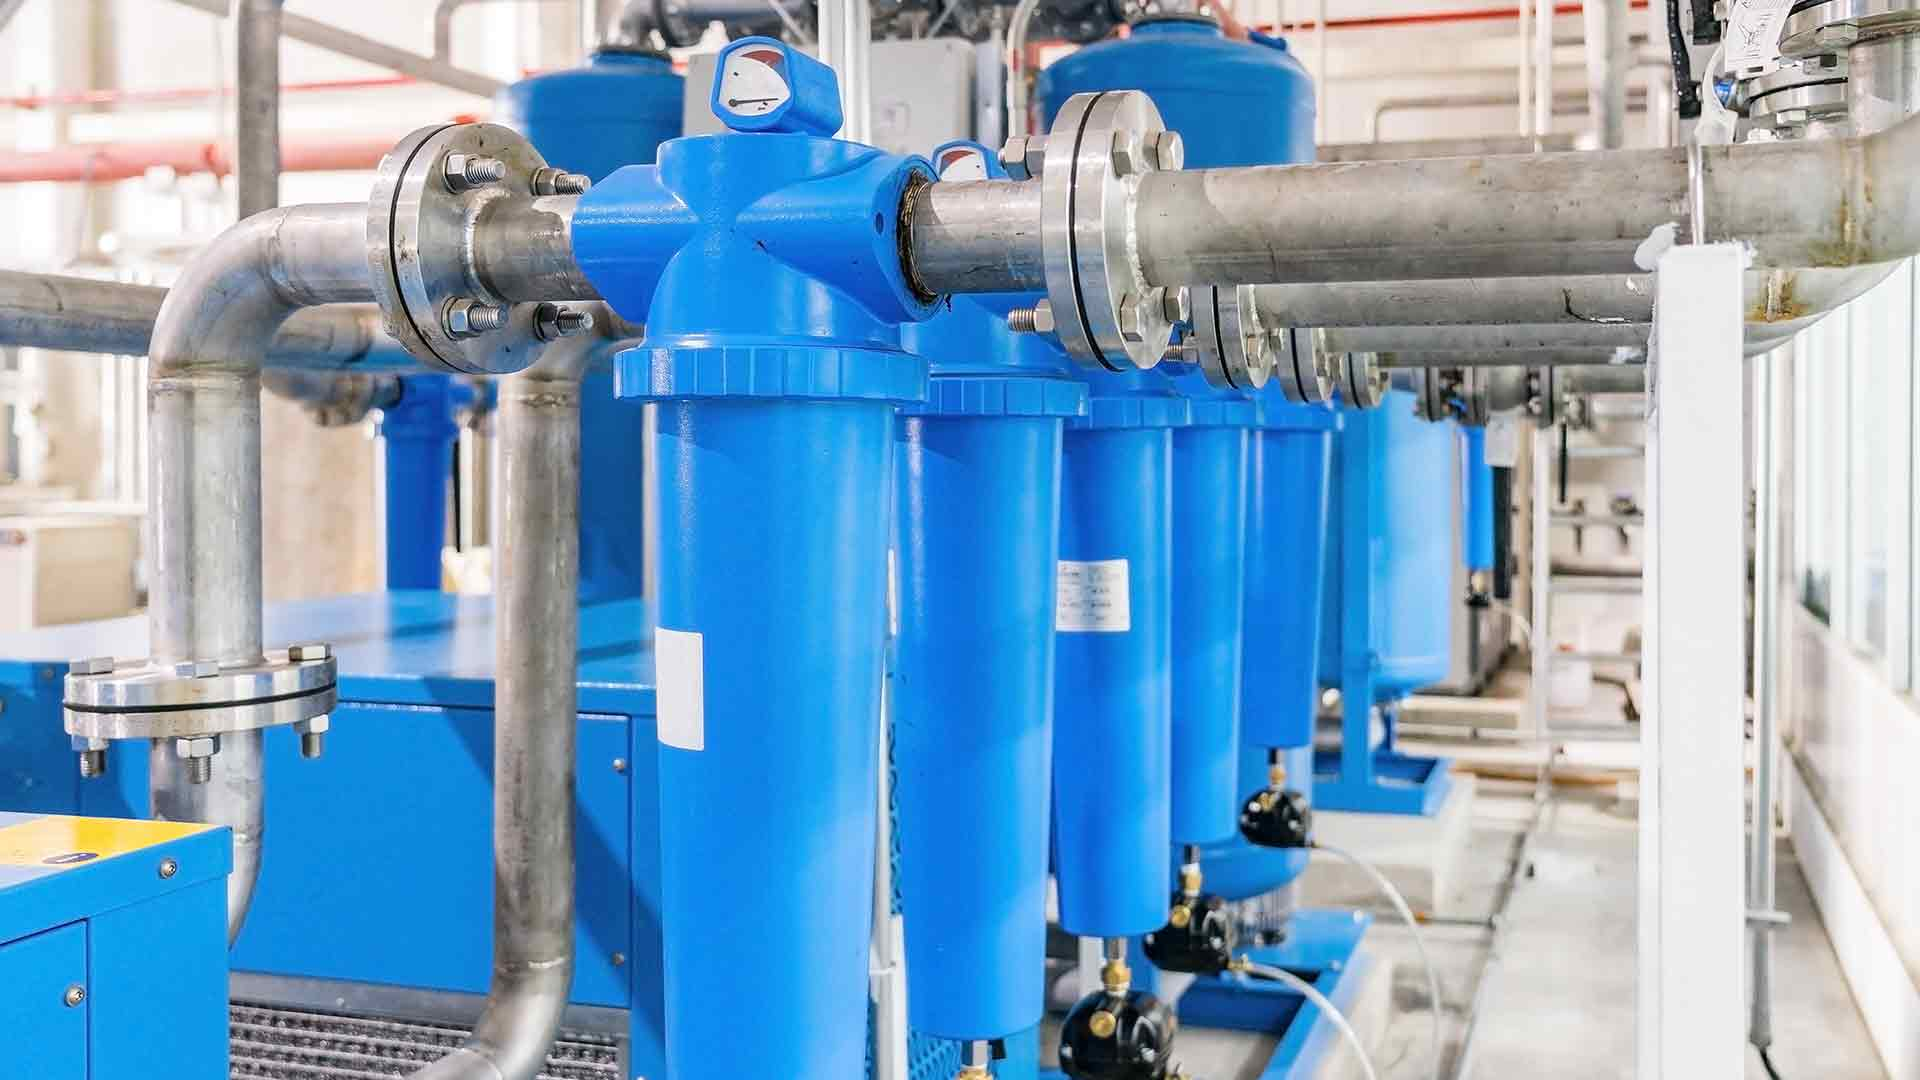 multiple blue compressed air dryers aligned in a large factory